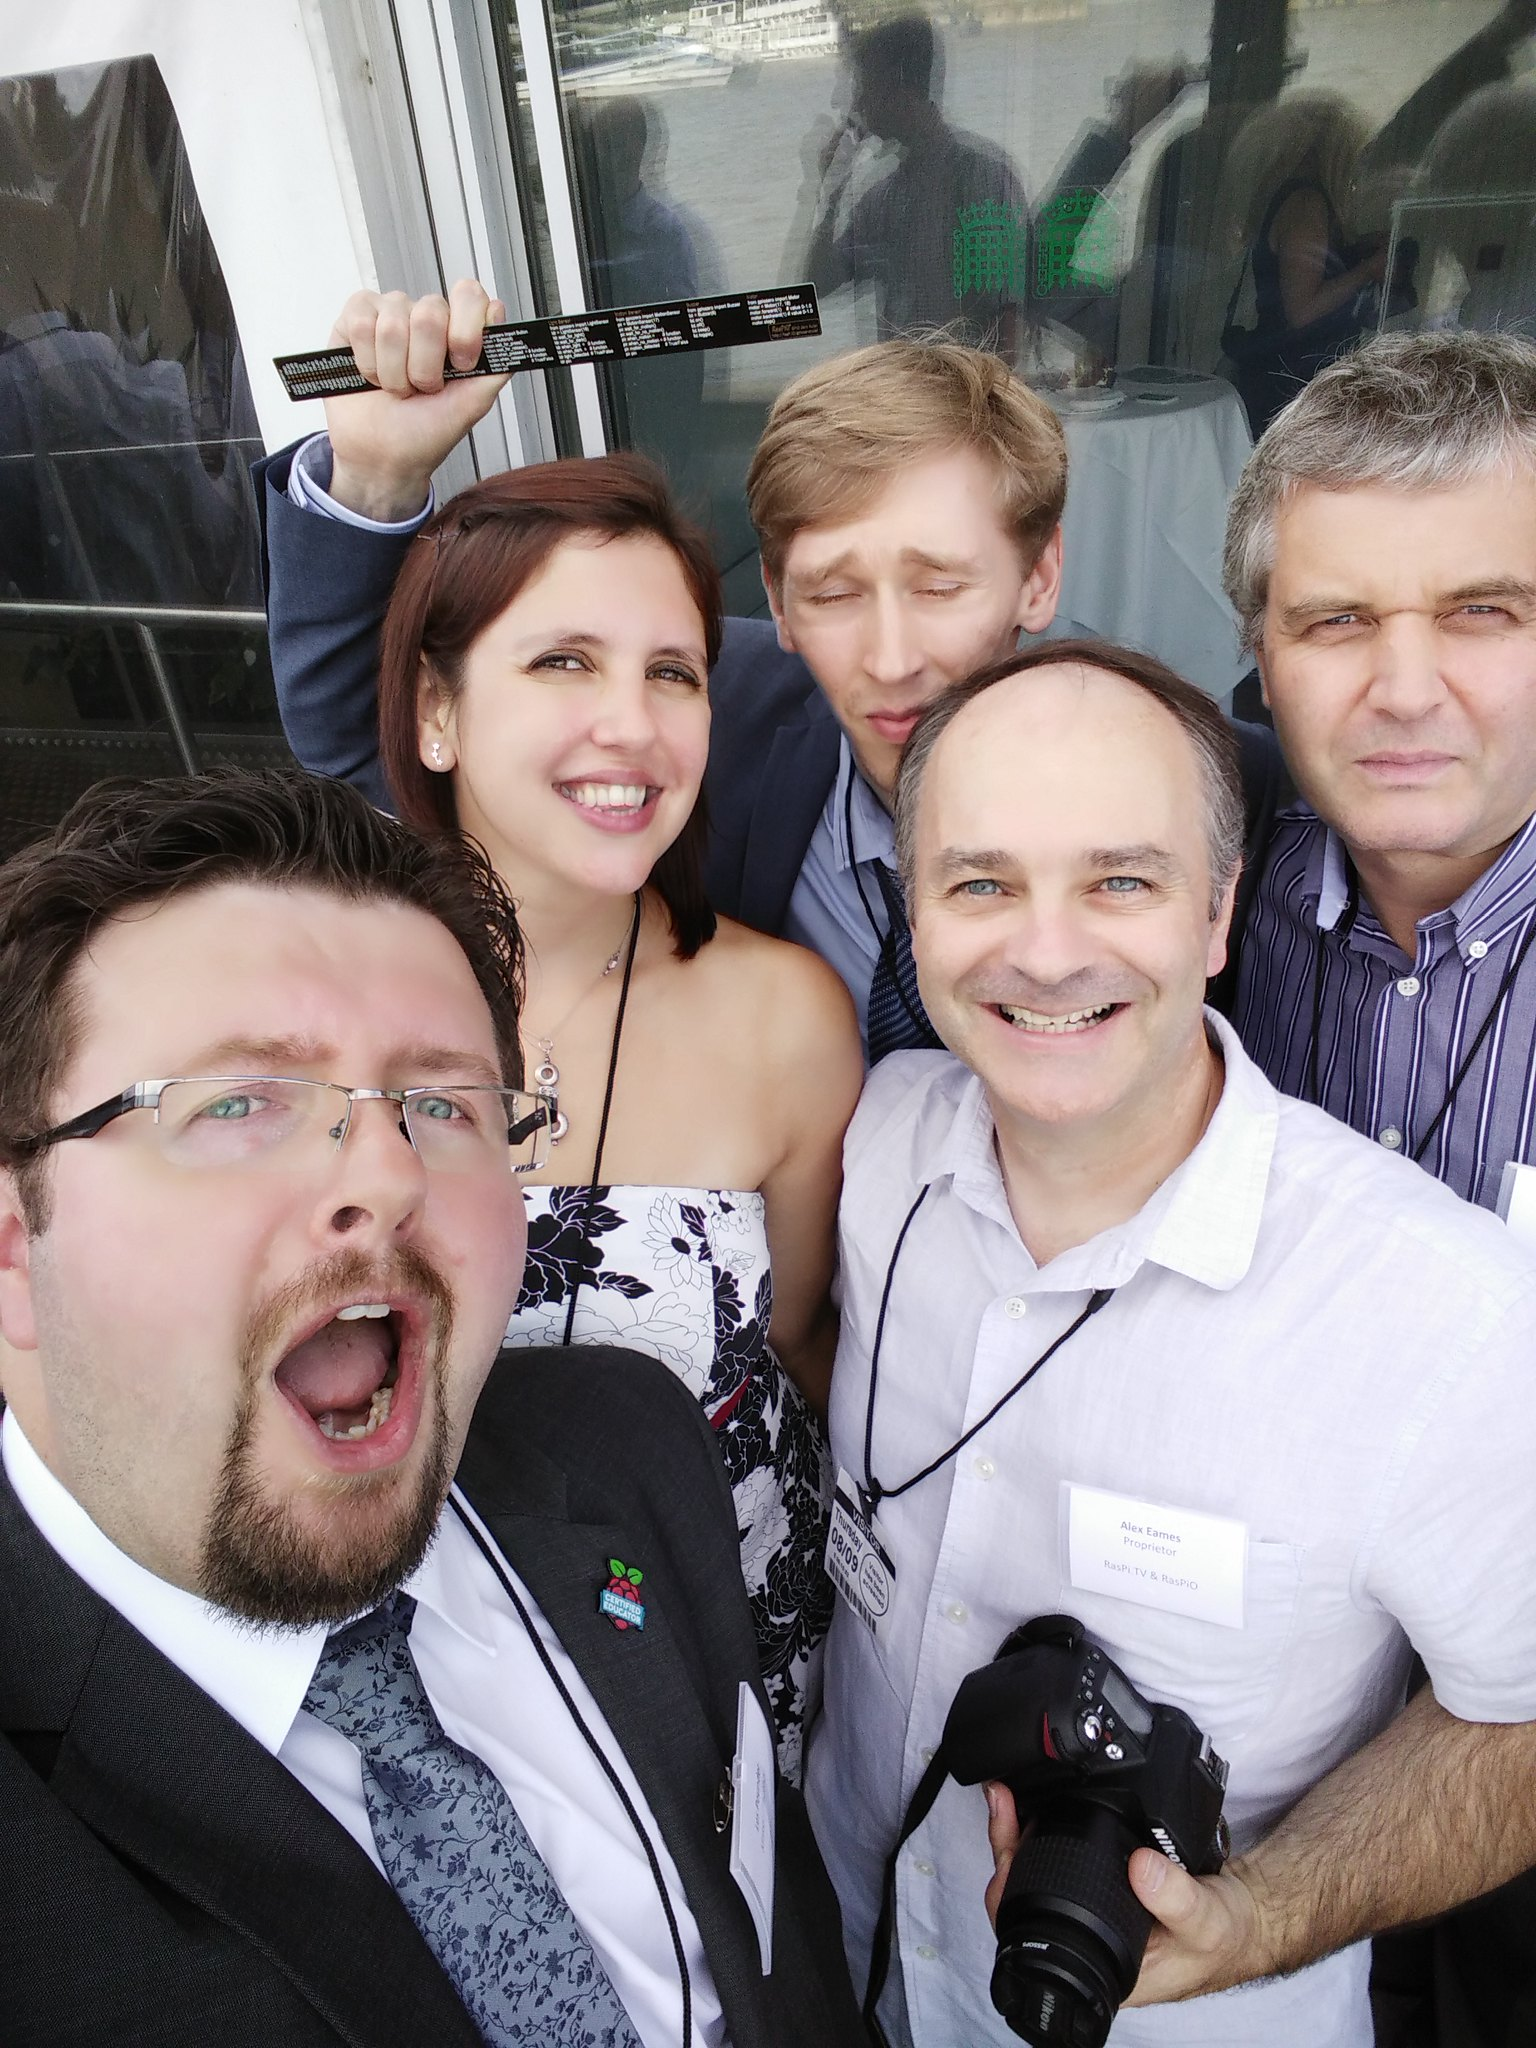 Me, Cat Lamin, Ben Nuttall, Alex Eames, Albert Hickey at the Palace of Westminster celebrating the success of the Raspberry Pi.